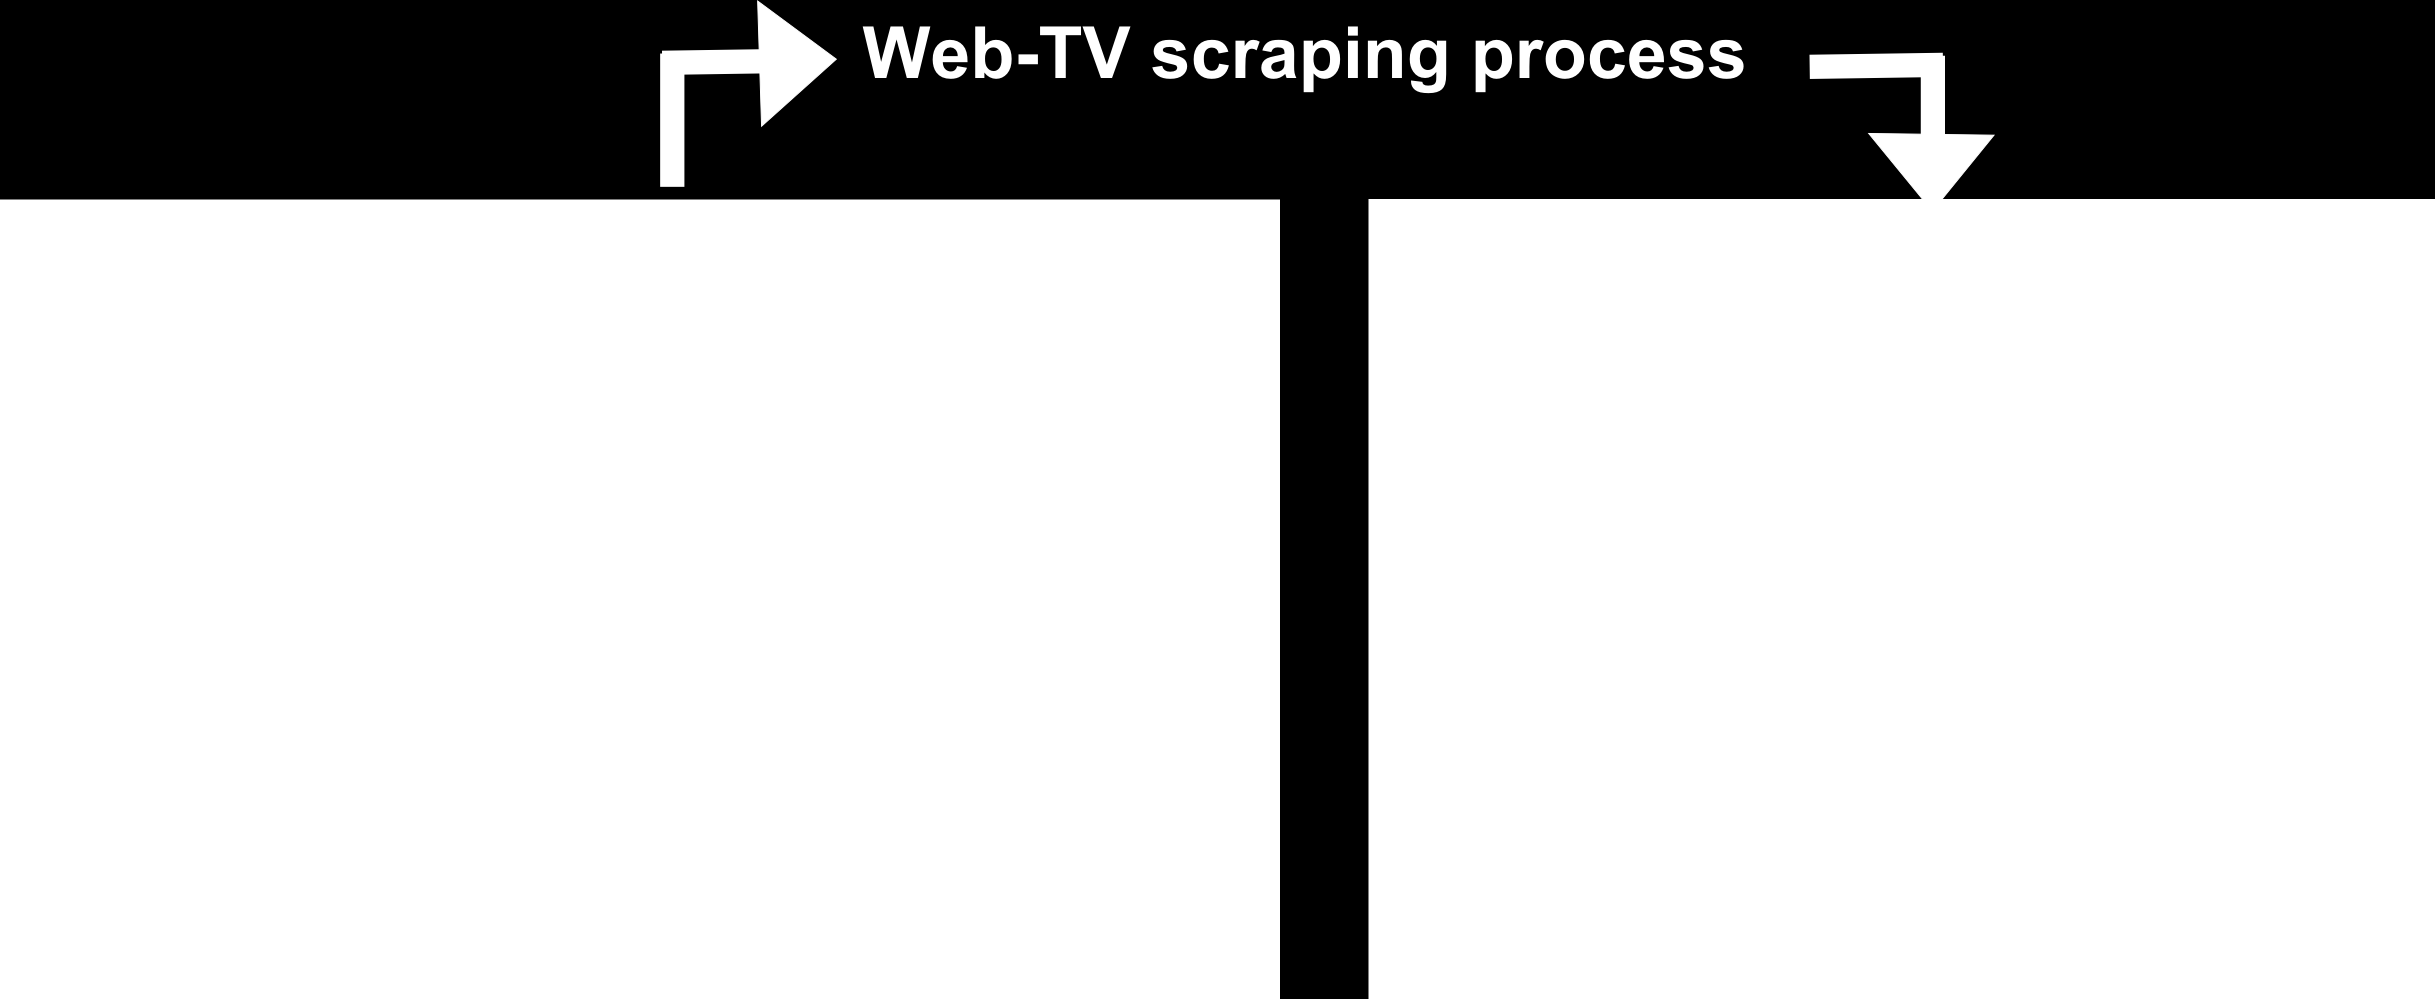 Information Extraction in Semantic, Highly-Structured, and Semi-Structured Web Sources Fig. 2. The contents displayed on the TV screen are taken from the Web portal.